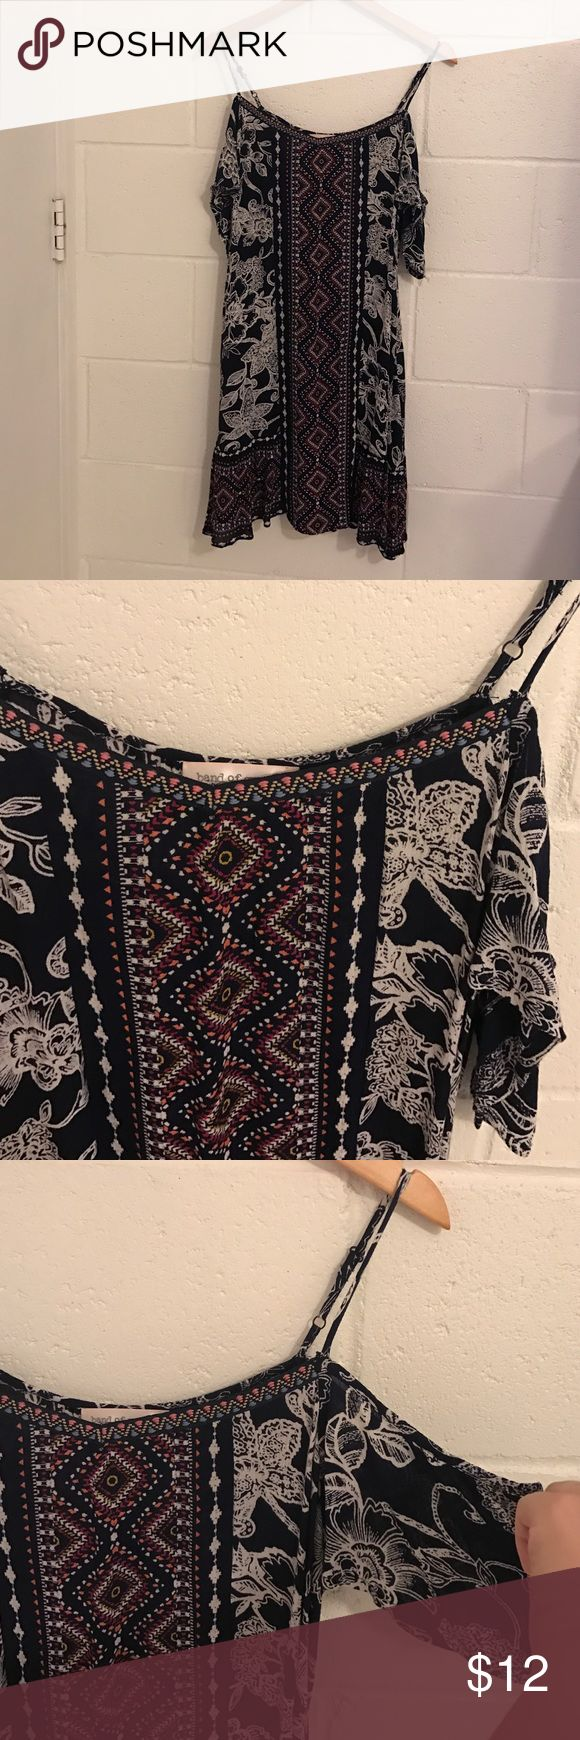 Cold shoulder dress Super cute off shoulder adjustable strap boho style dress. Band of Gypsies Dresses Mini